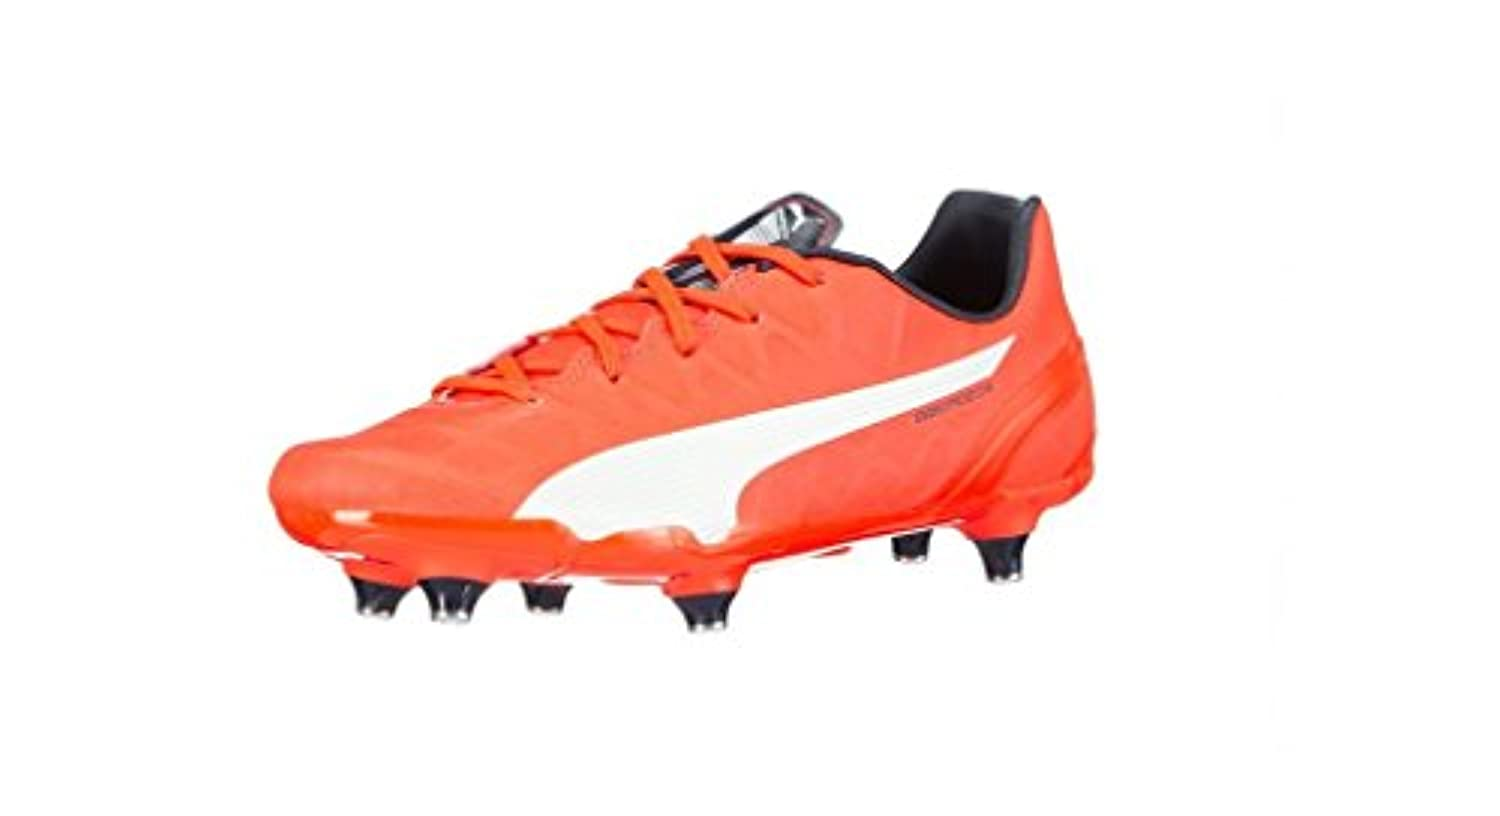 Puma Unisex Kids' evoSPEED 4.4 SG Jr Football boots (training) Orange Size: 1